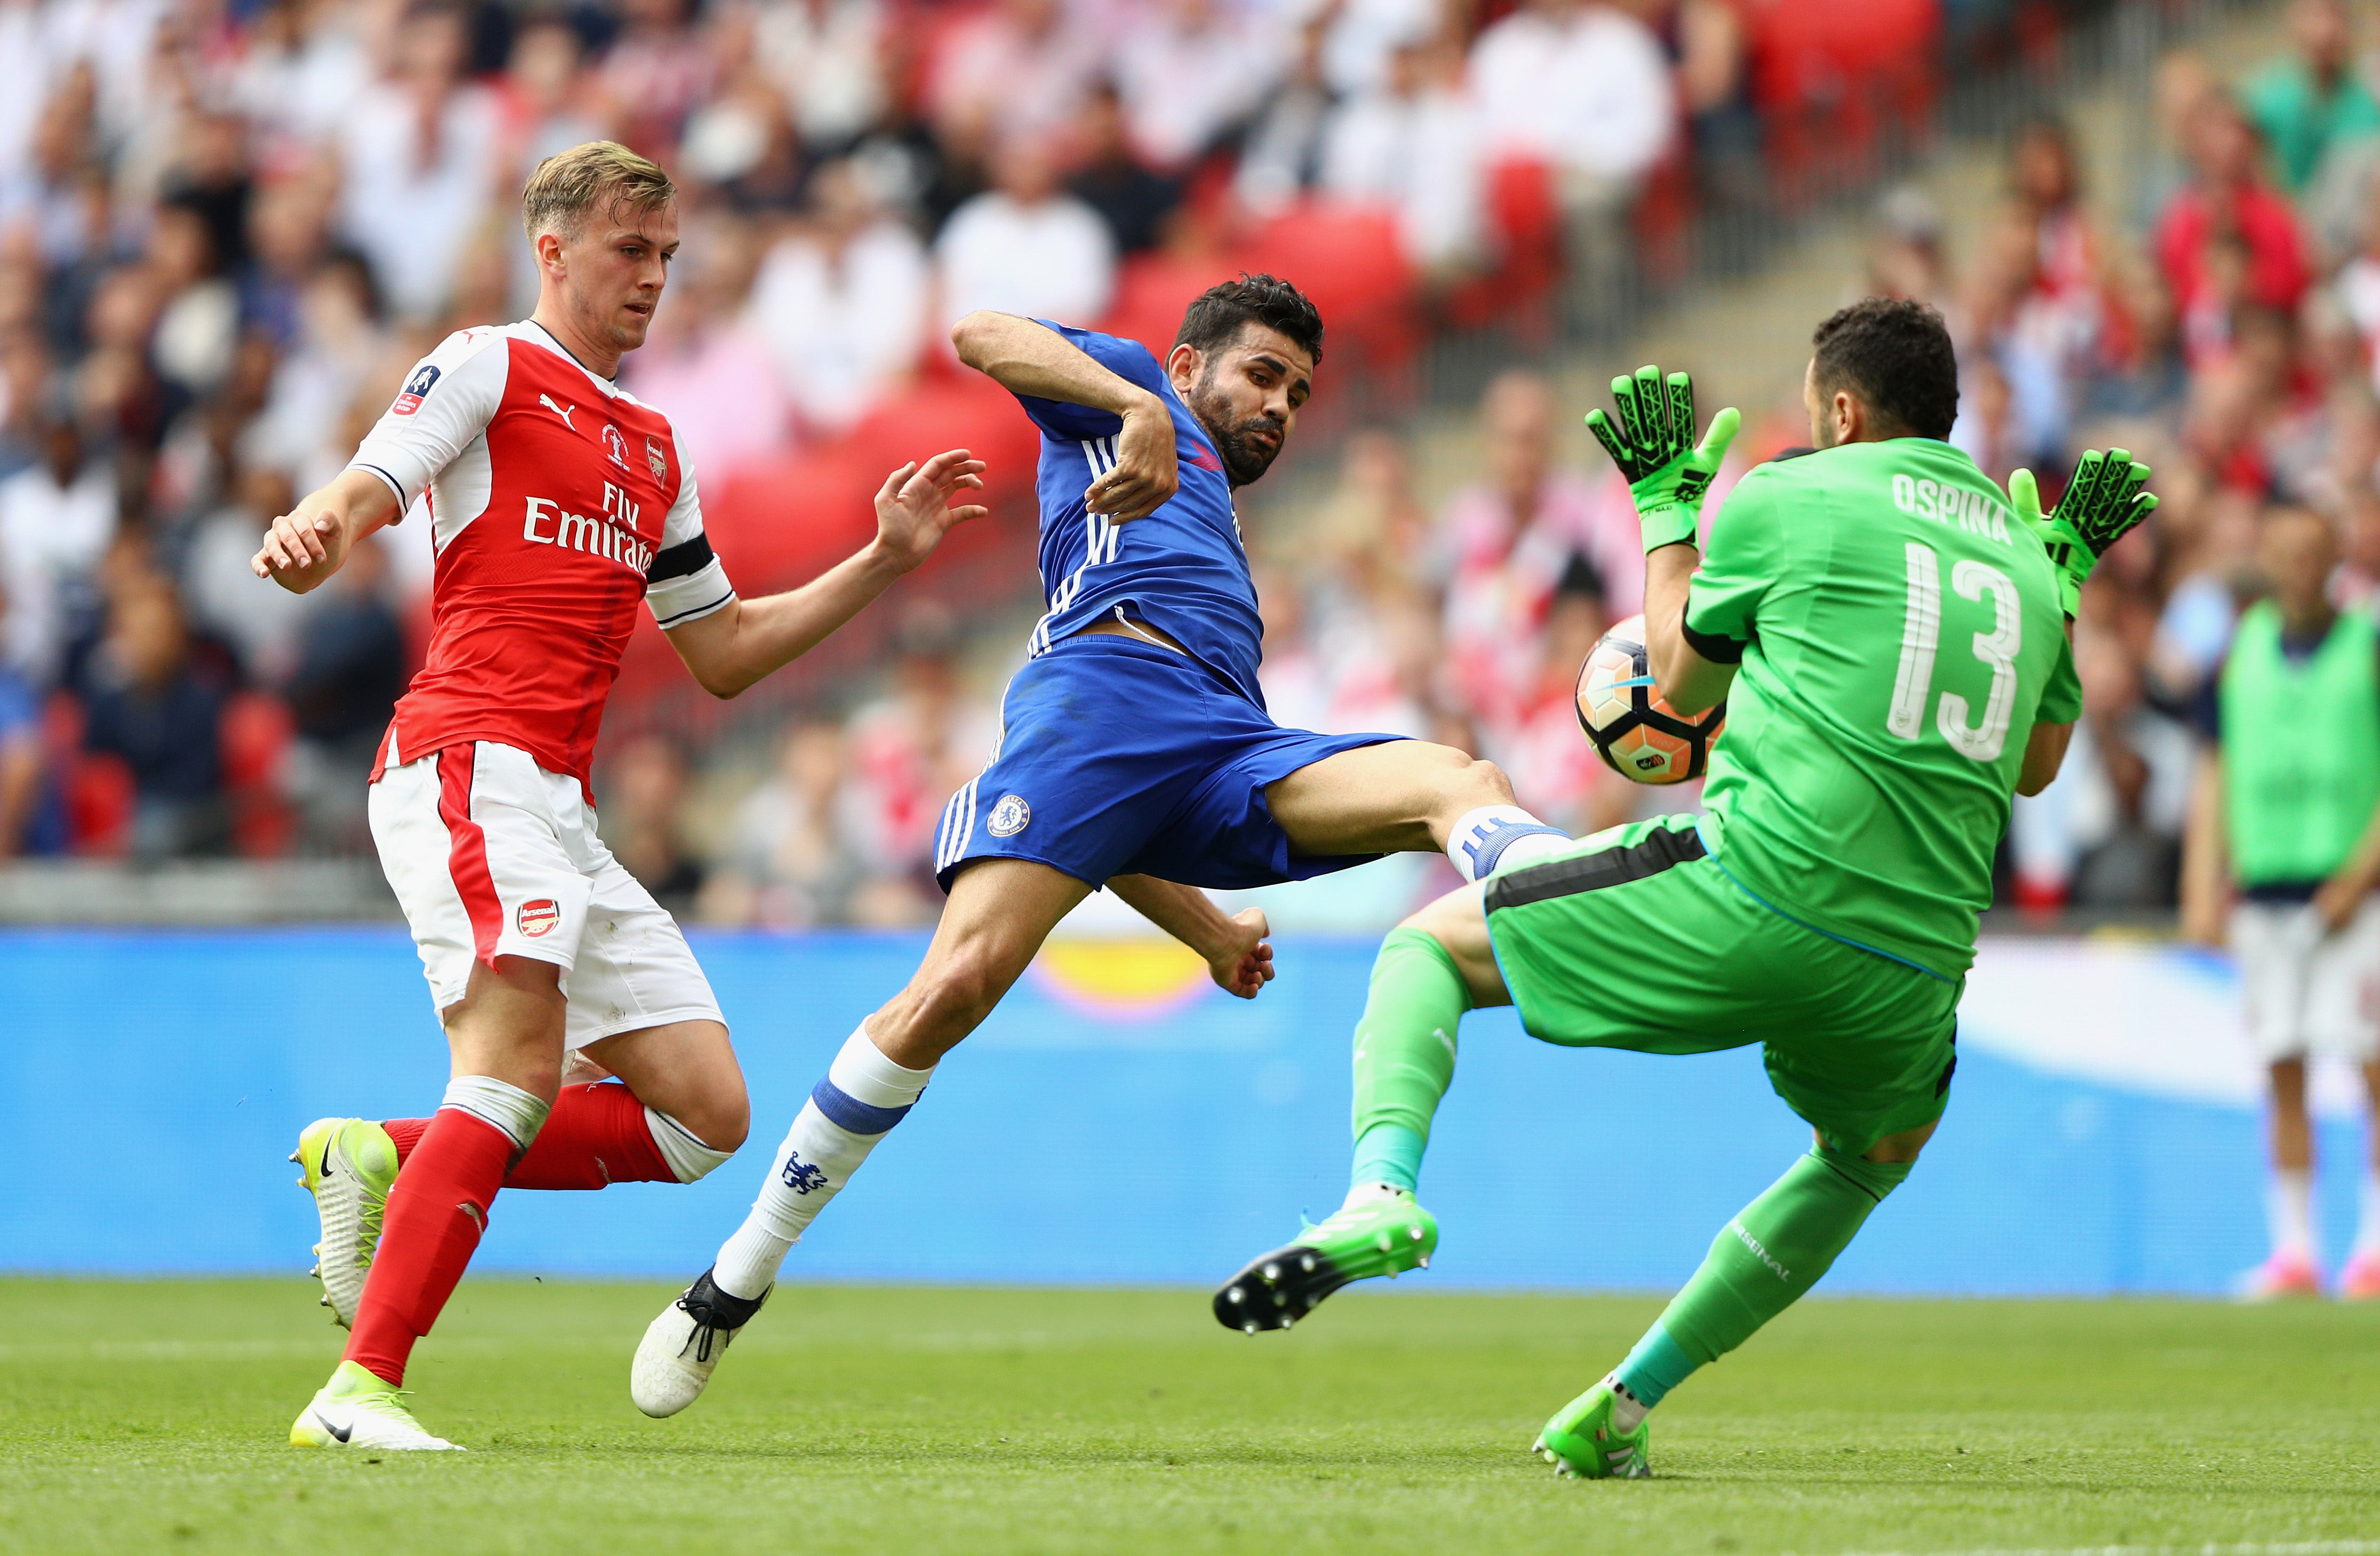 Chelsea beaten by Arsenal at Wembley